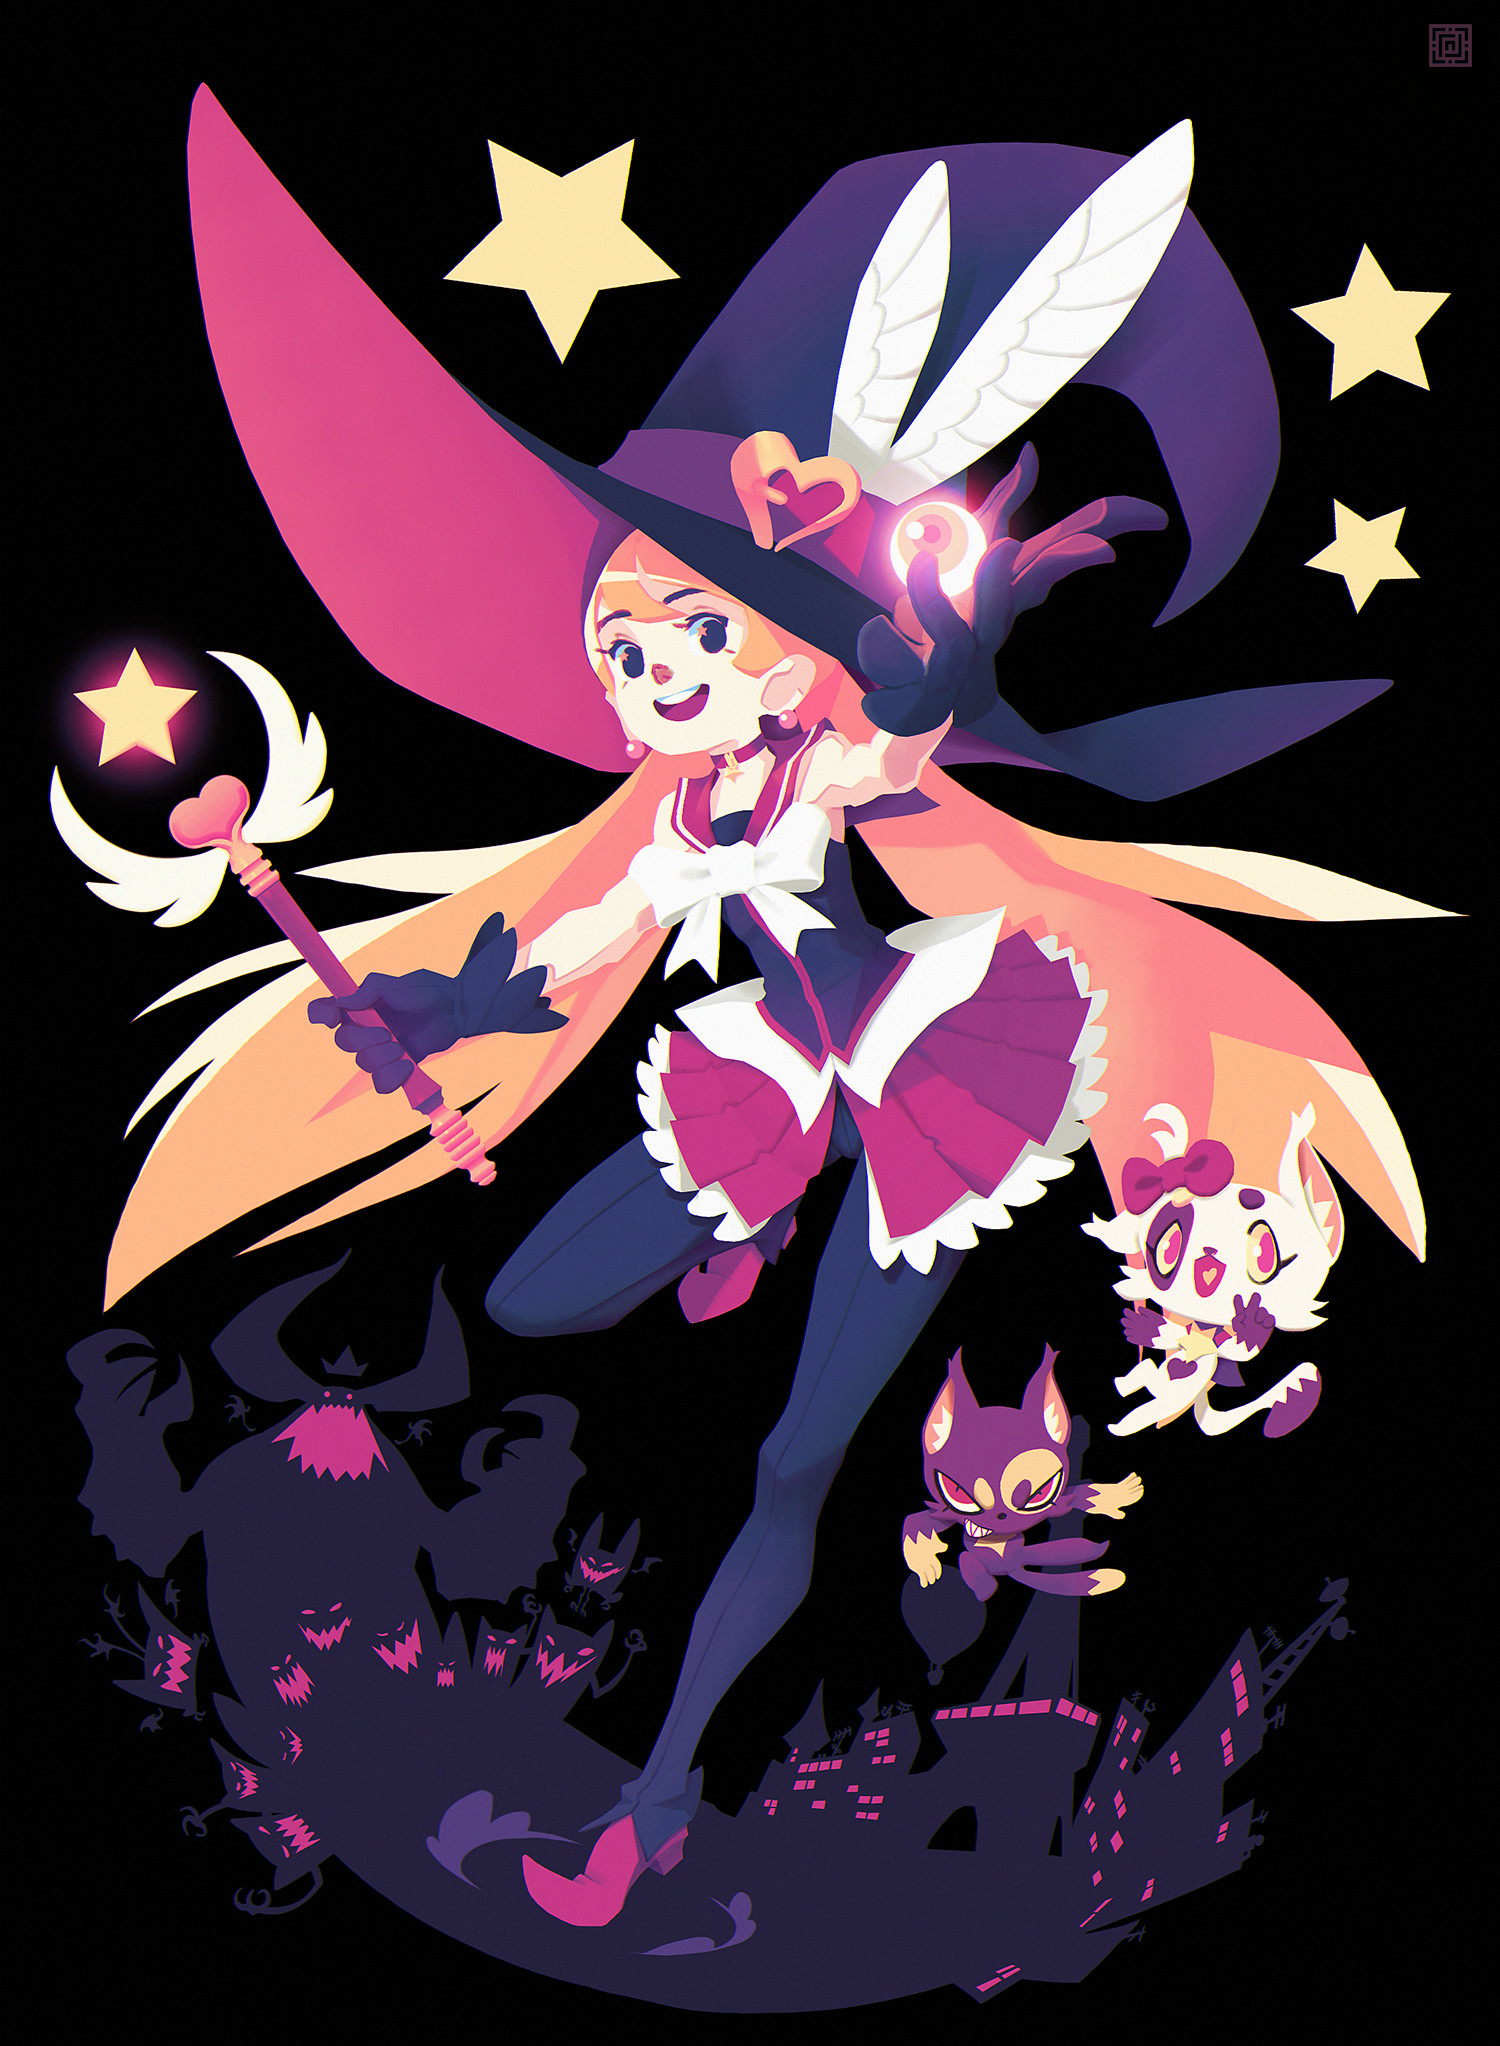 Alexis rives witch06